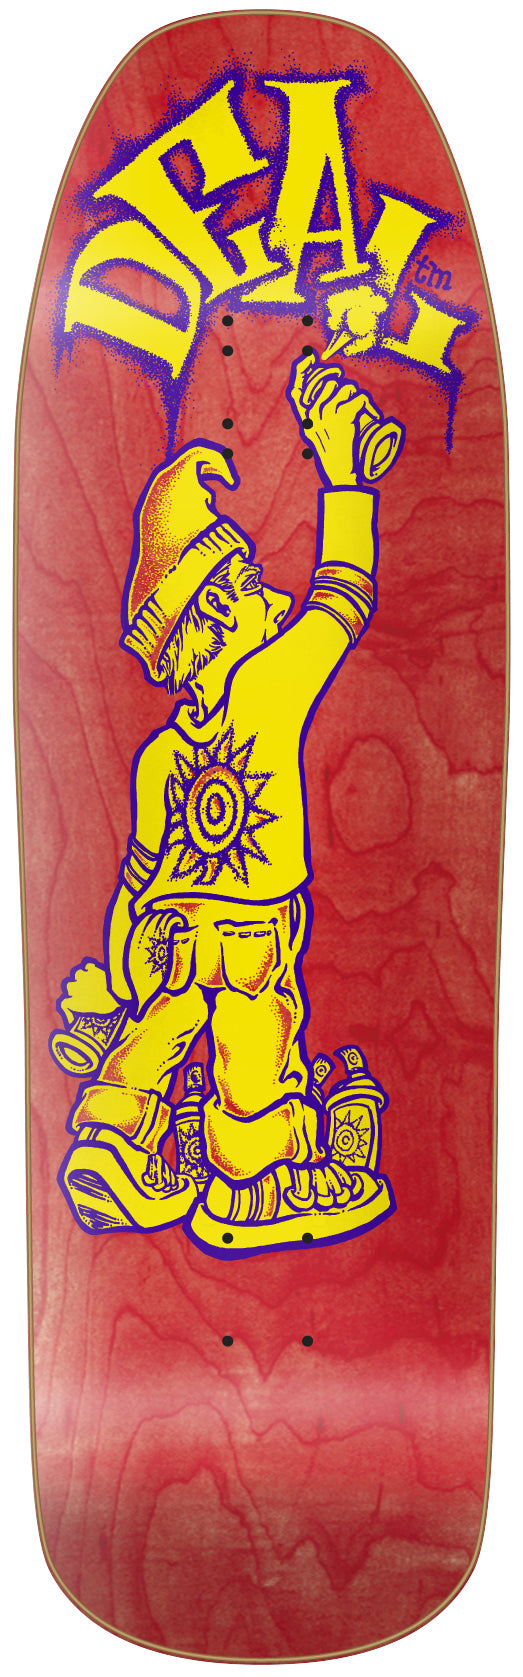 New Deal Tagger Skateboard Deck *Pre-Order*